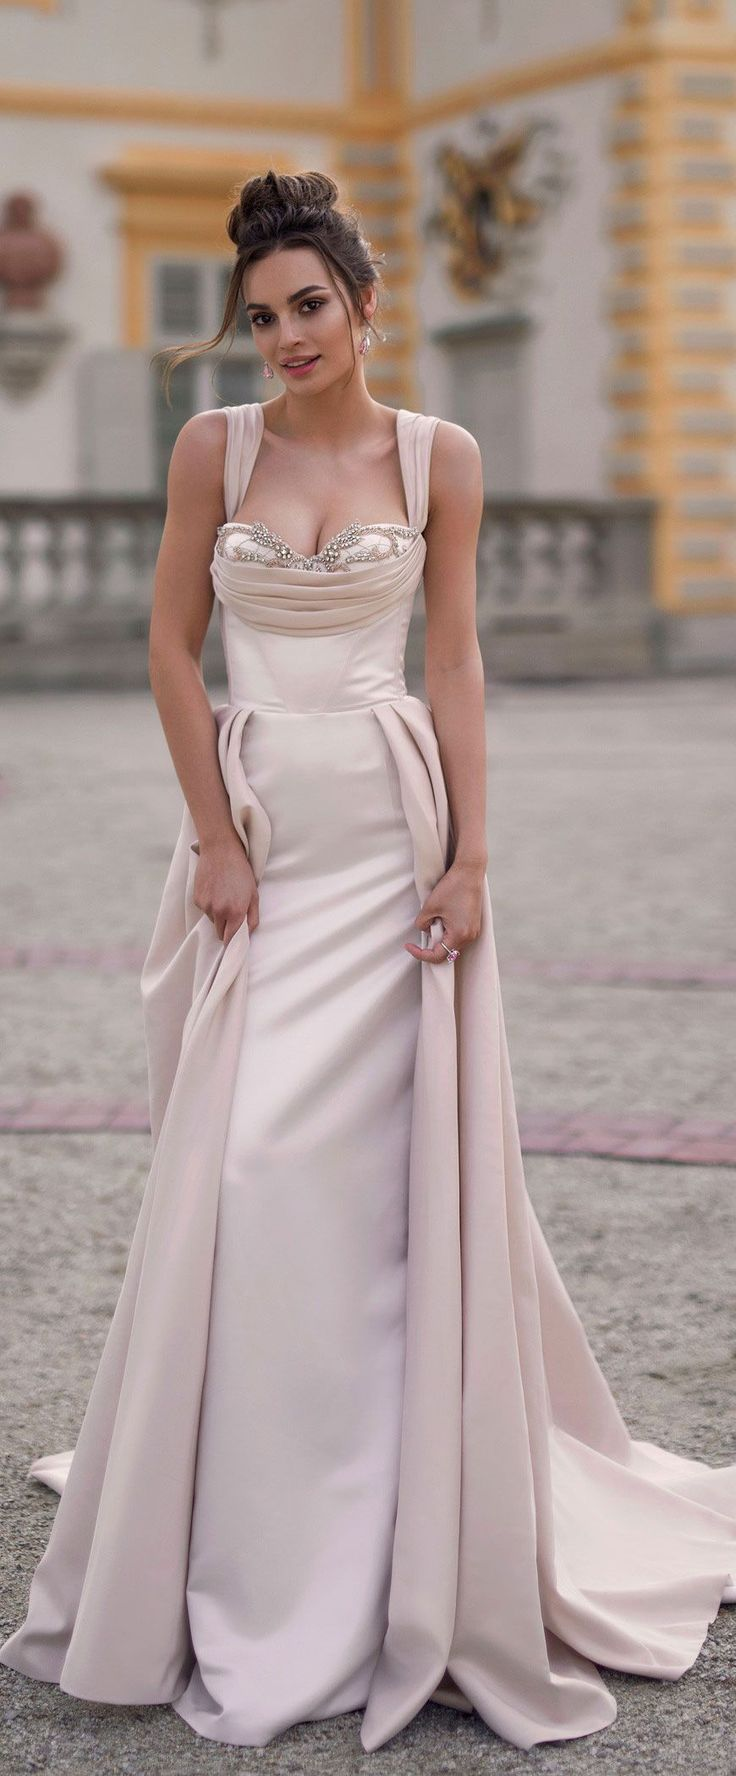 Magnificent bridal gown with sweetheart neckline... this dress is just amazingly gorgeous.